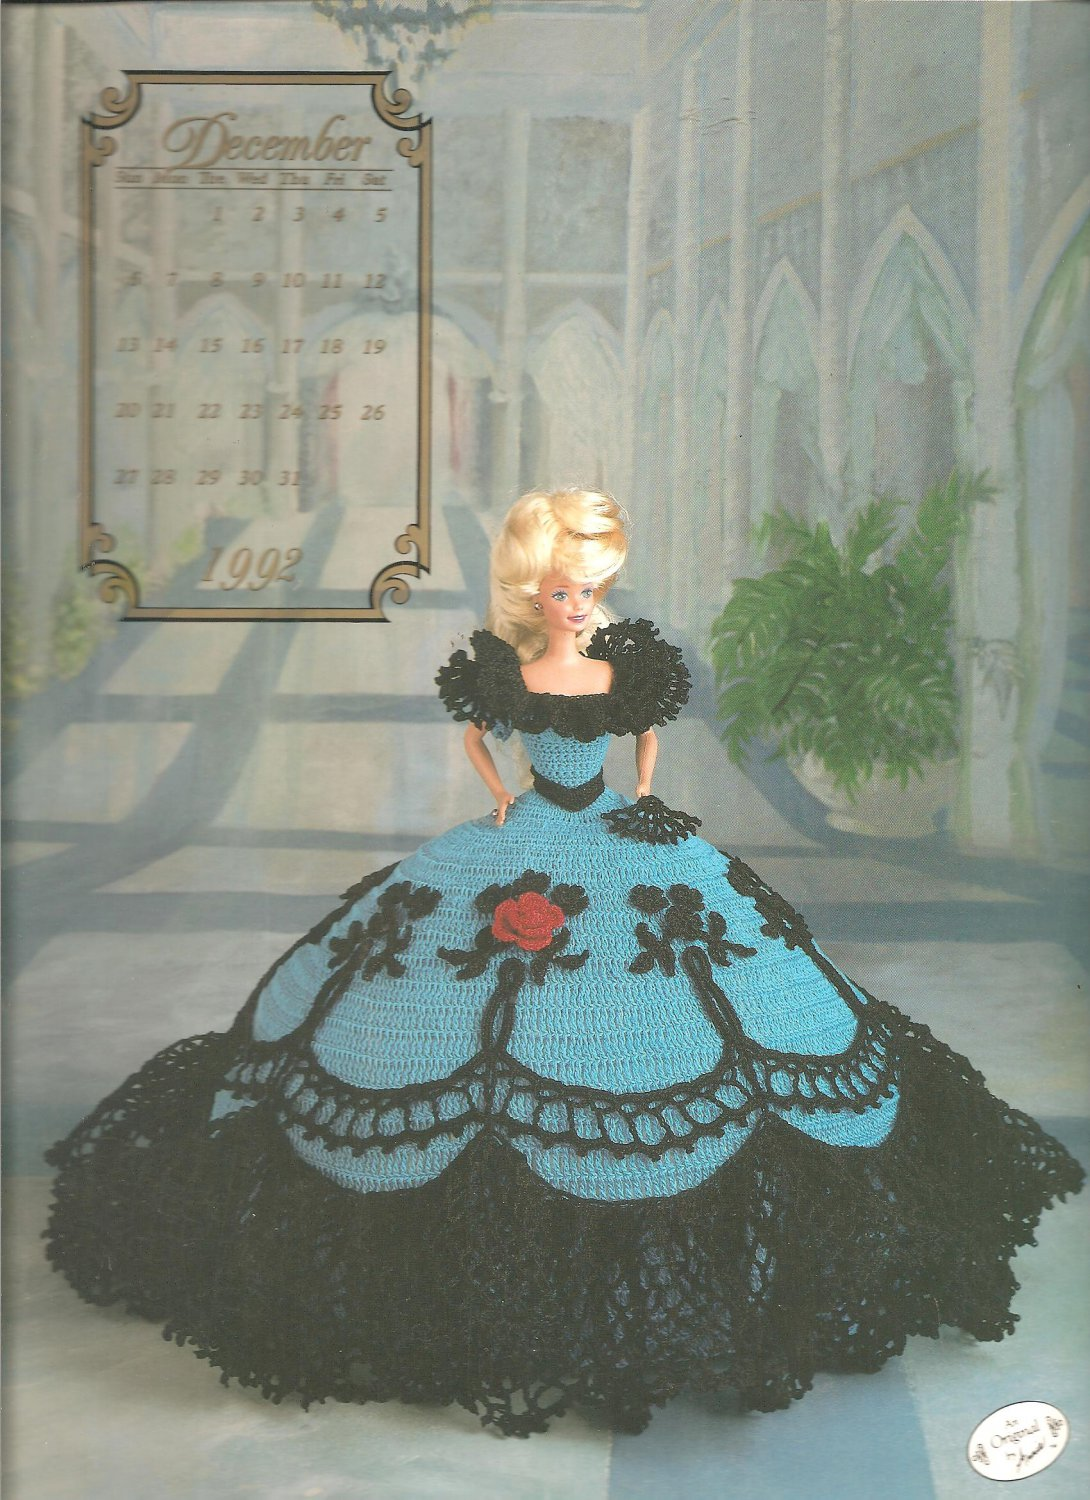 Annies Attic Crochet : Annies Attic The Cotillion, Miss December 1992, Crochet Pattern for ...